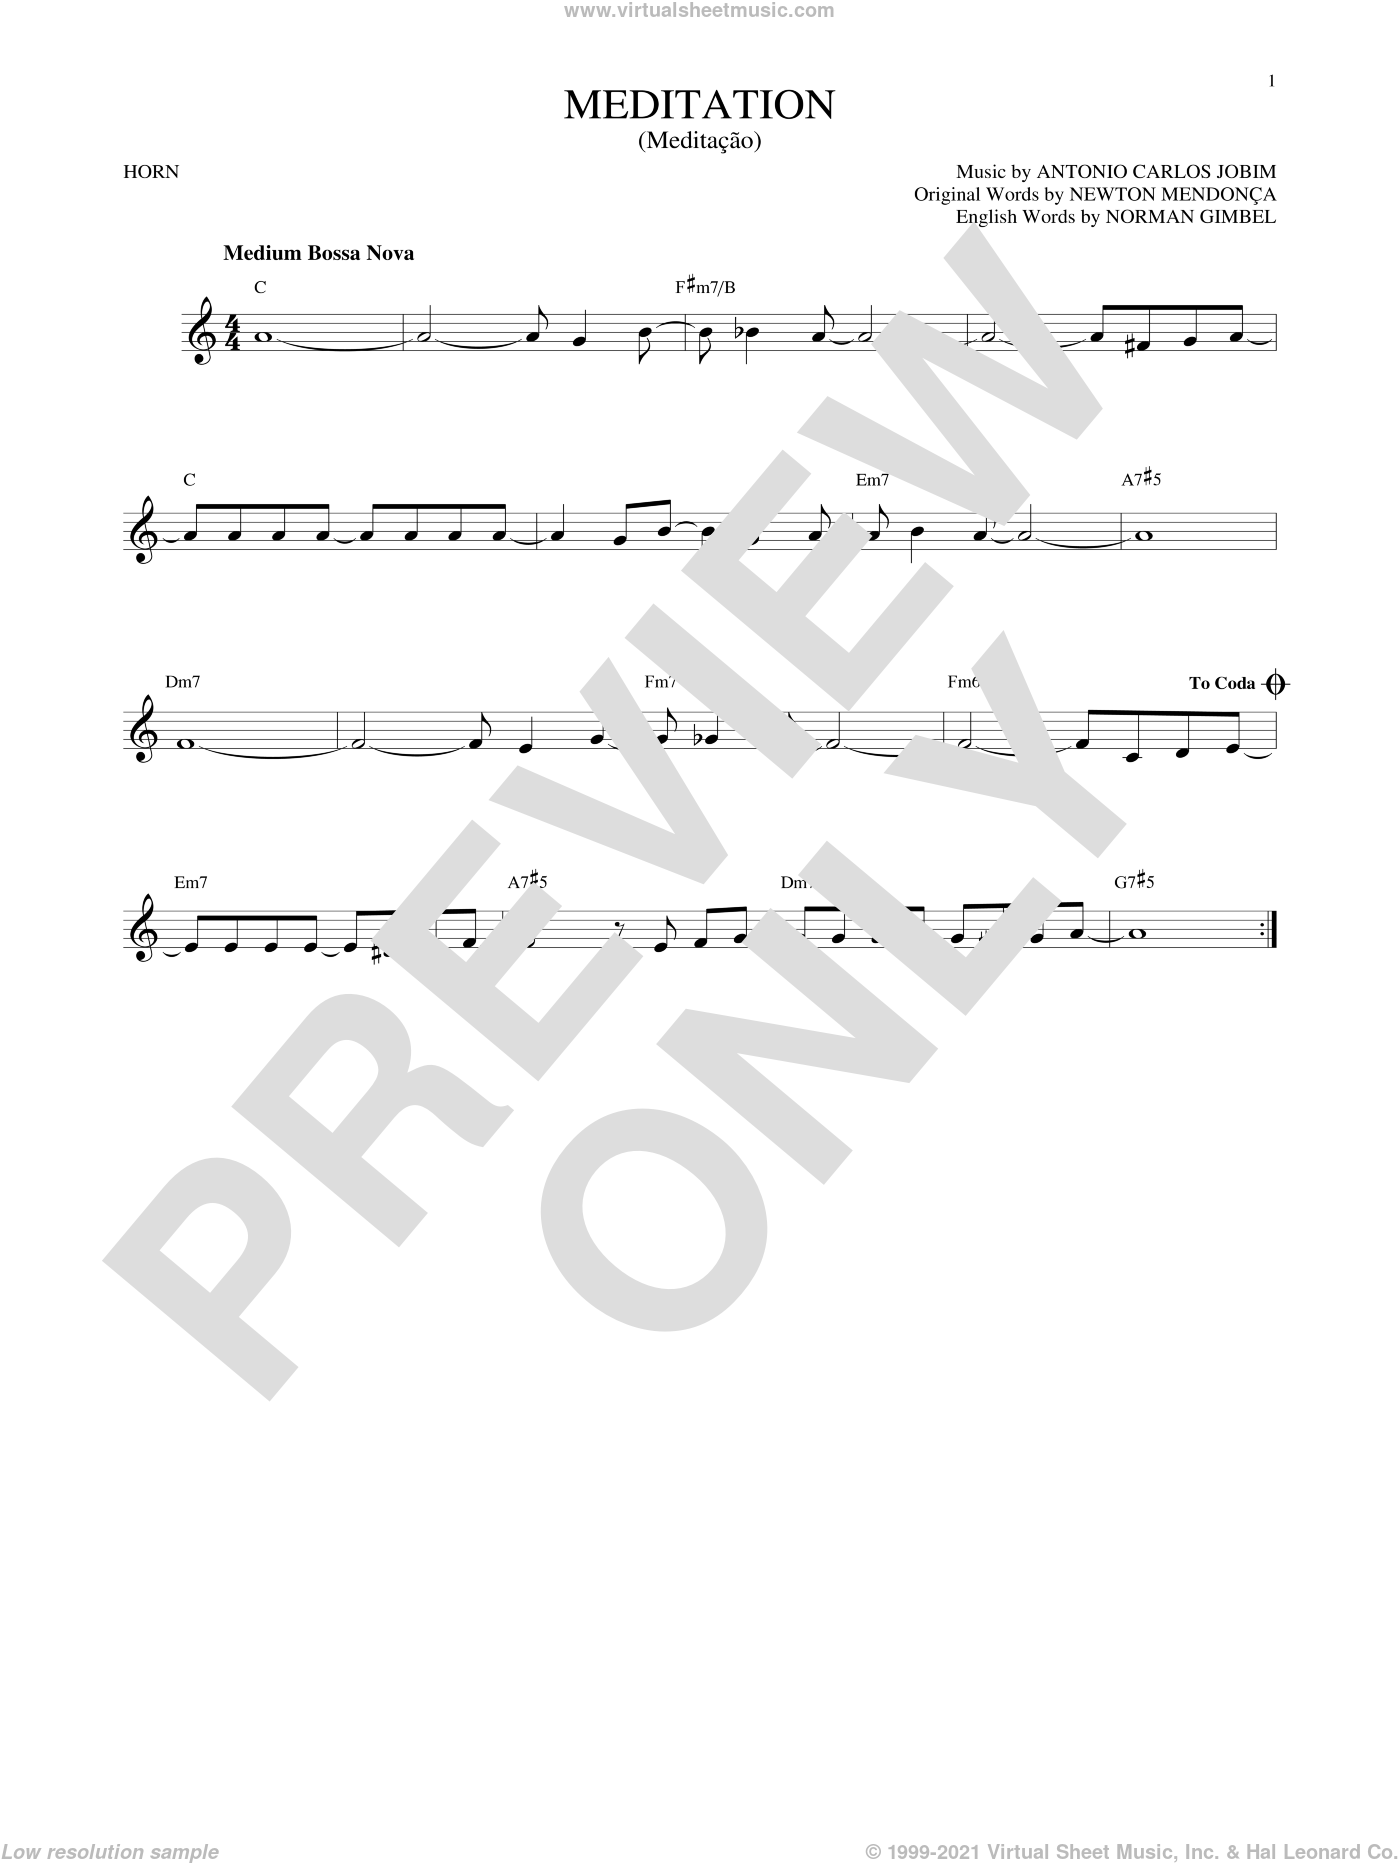 Meditation (Meditacao) sheet music for horn solo by Norman Gimbel and Antonio Carlos Jobim, intermediate. Score Image Preview.